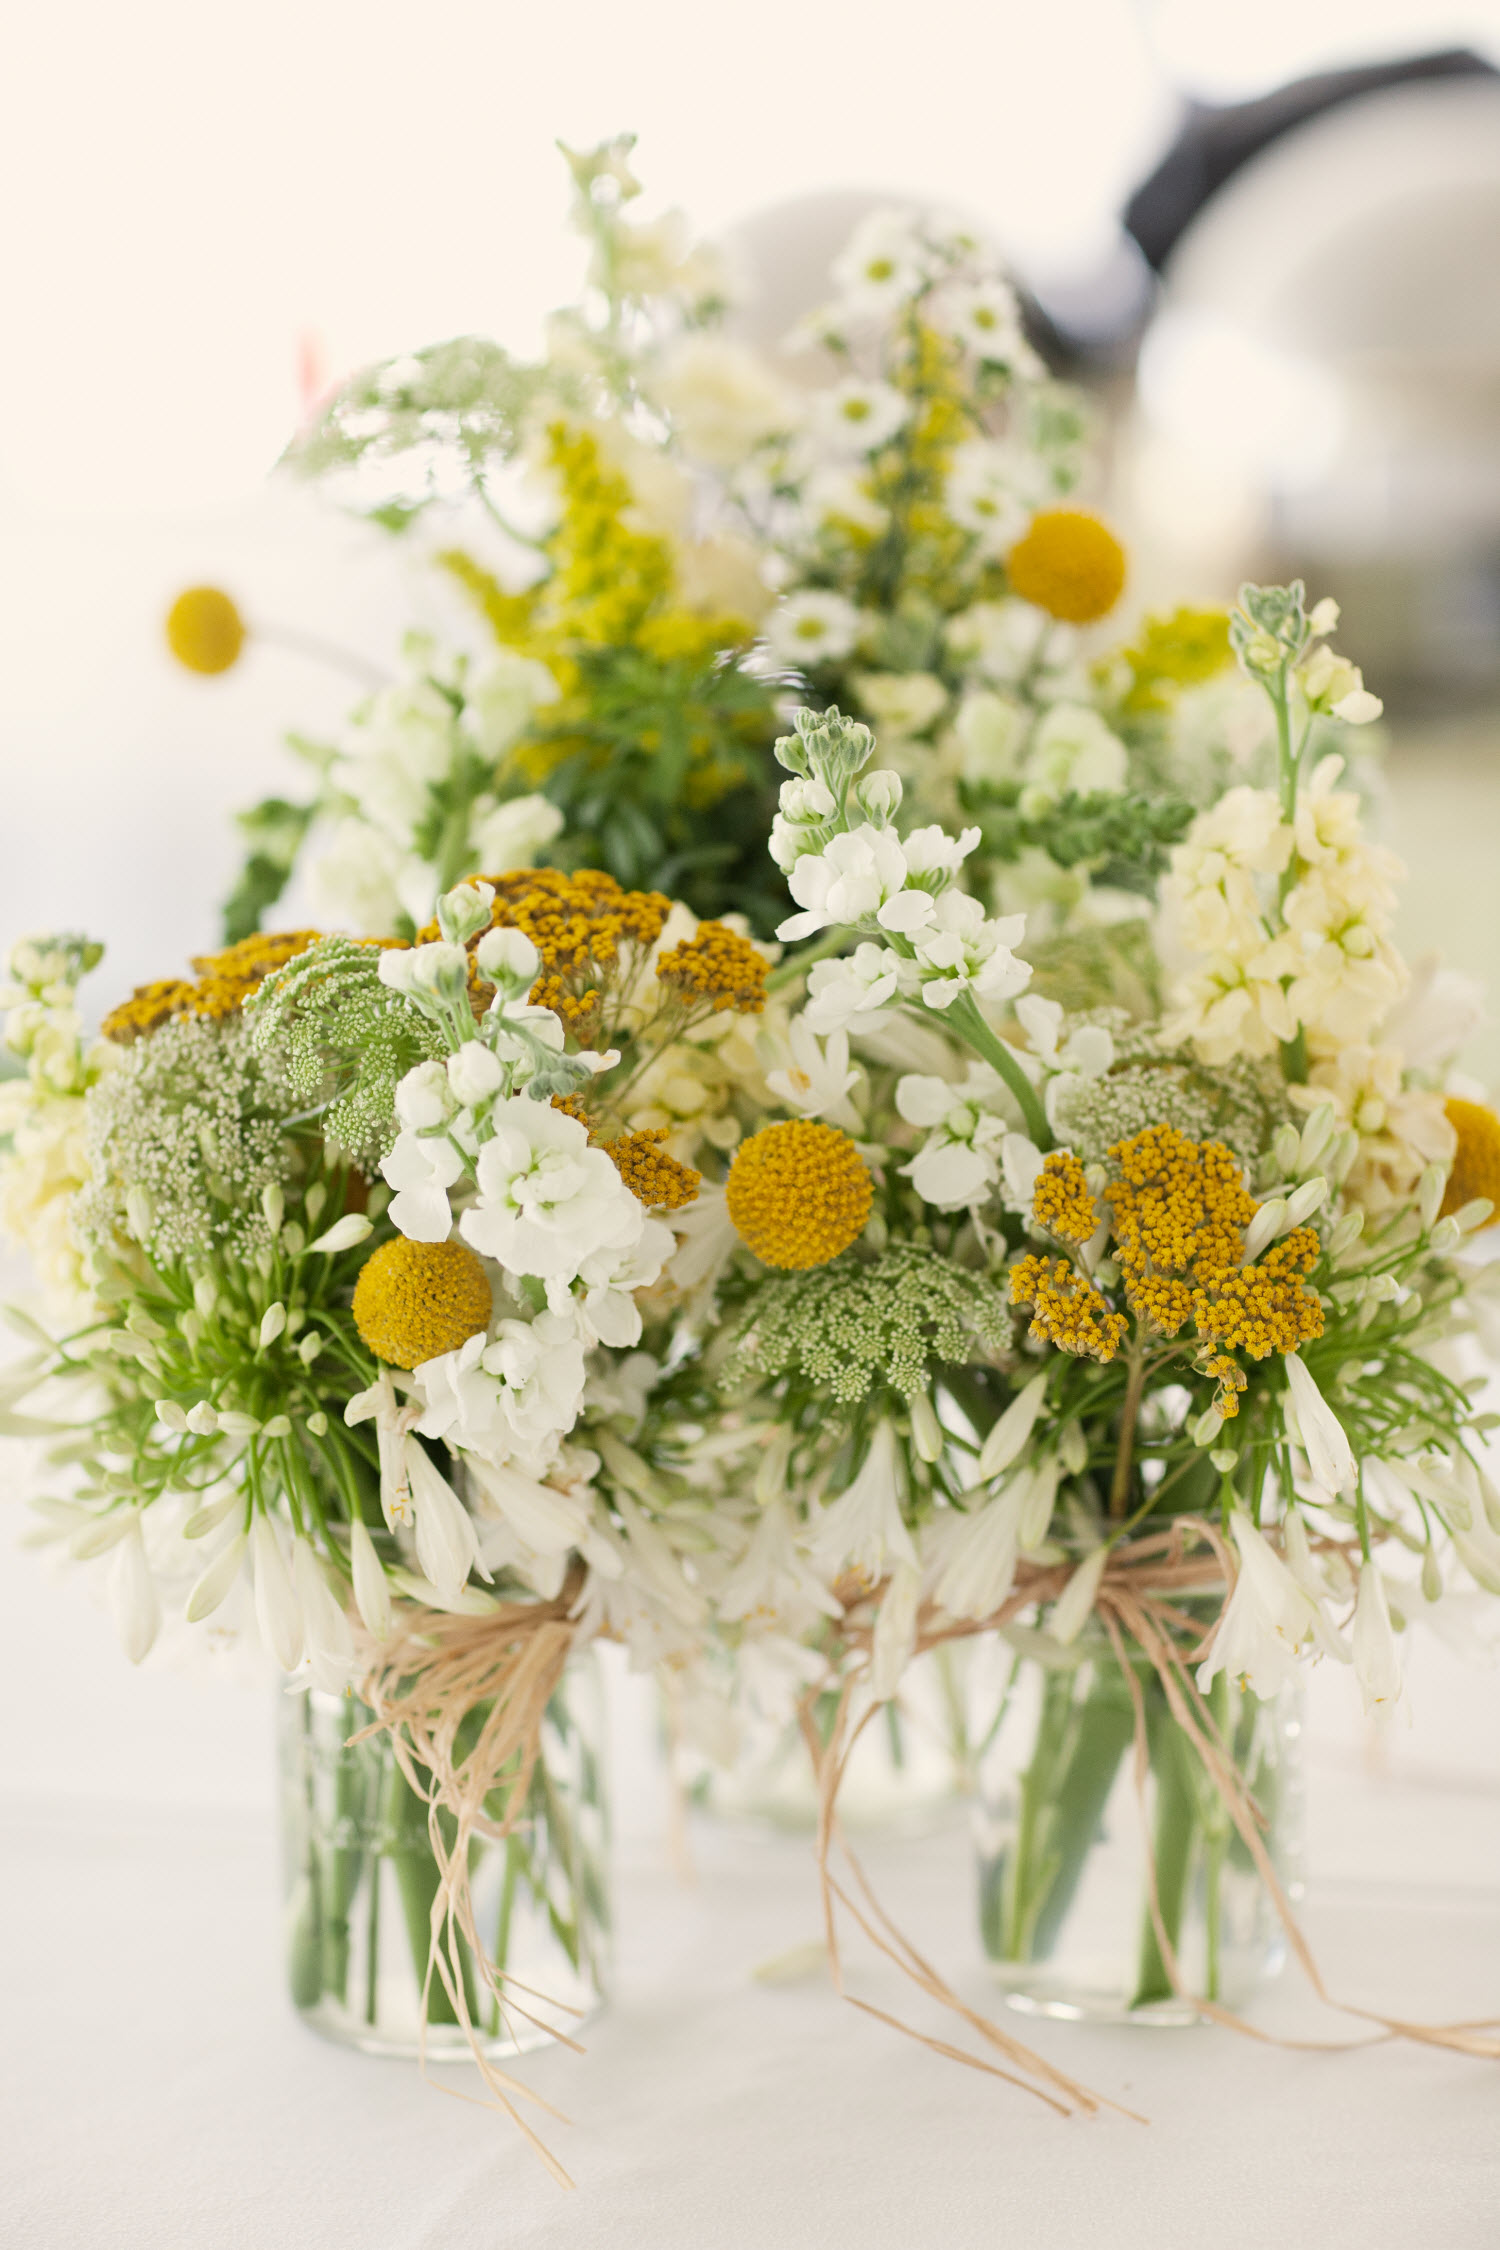 Whimsical spring wedding flowers and wedding reception for Floral arrangements for wedding reception centerpieces